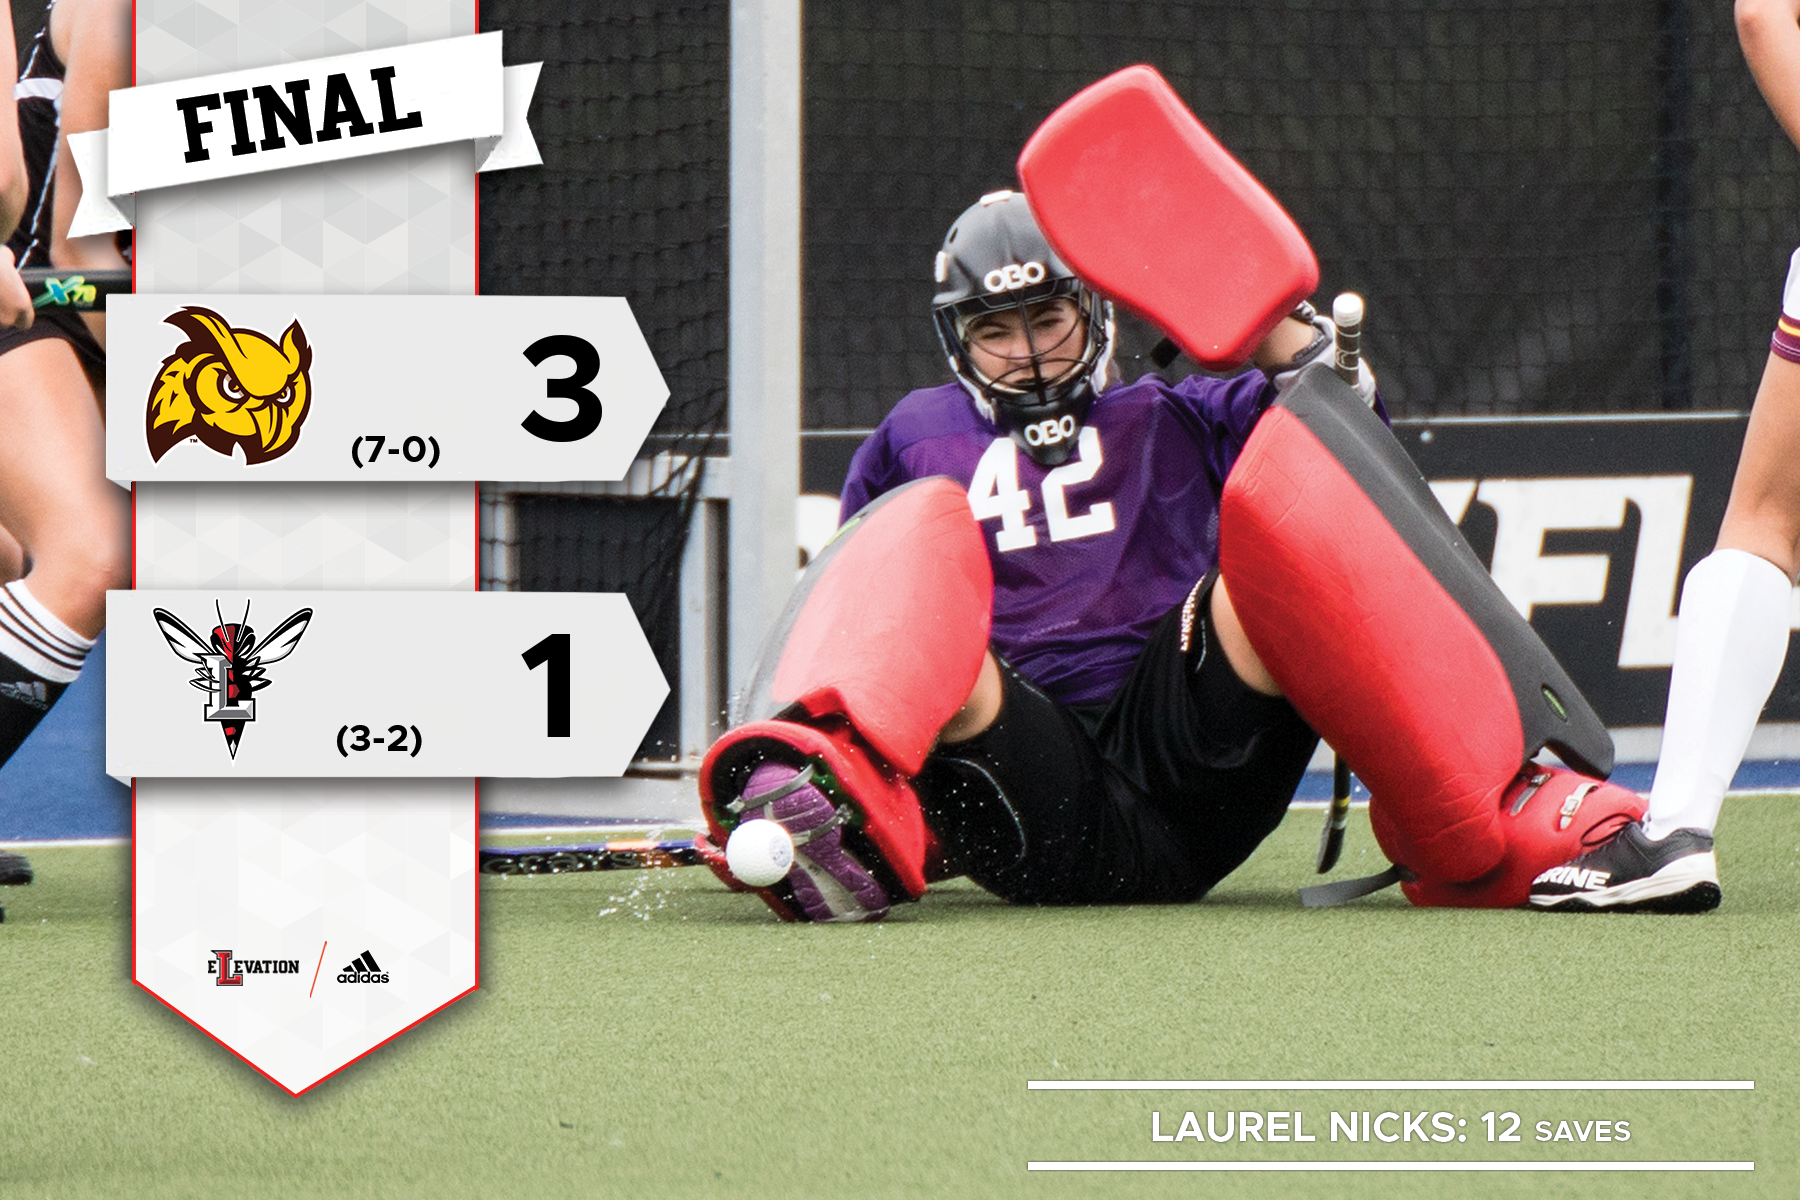 Laurel Nicks slides to make a save in field hockey. Graphic showing Rowan's 3-1 win over Lynchburg with team logos.